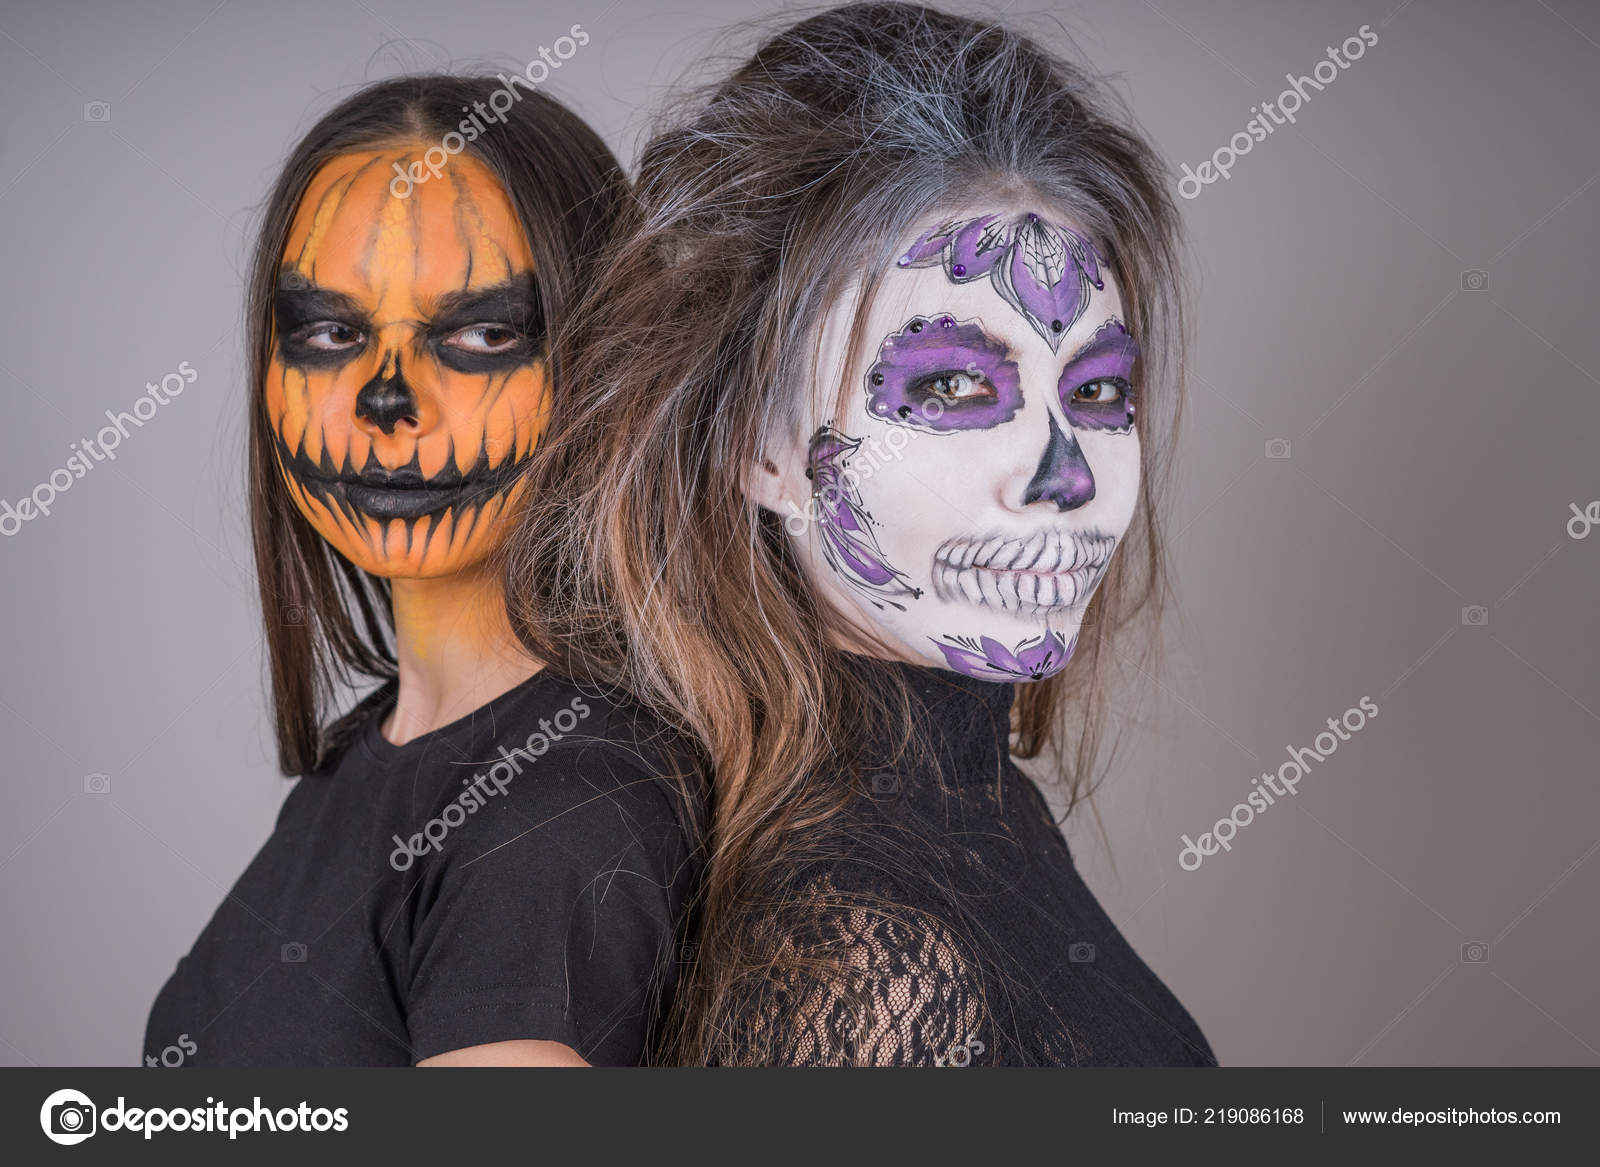 Young Girls With Horrific Faces Of The Dead In Honor Of The Holiday